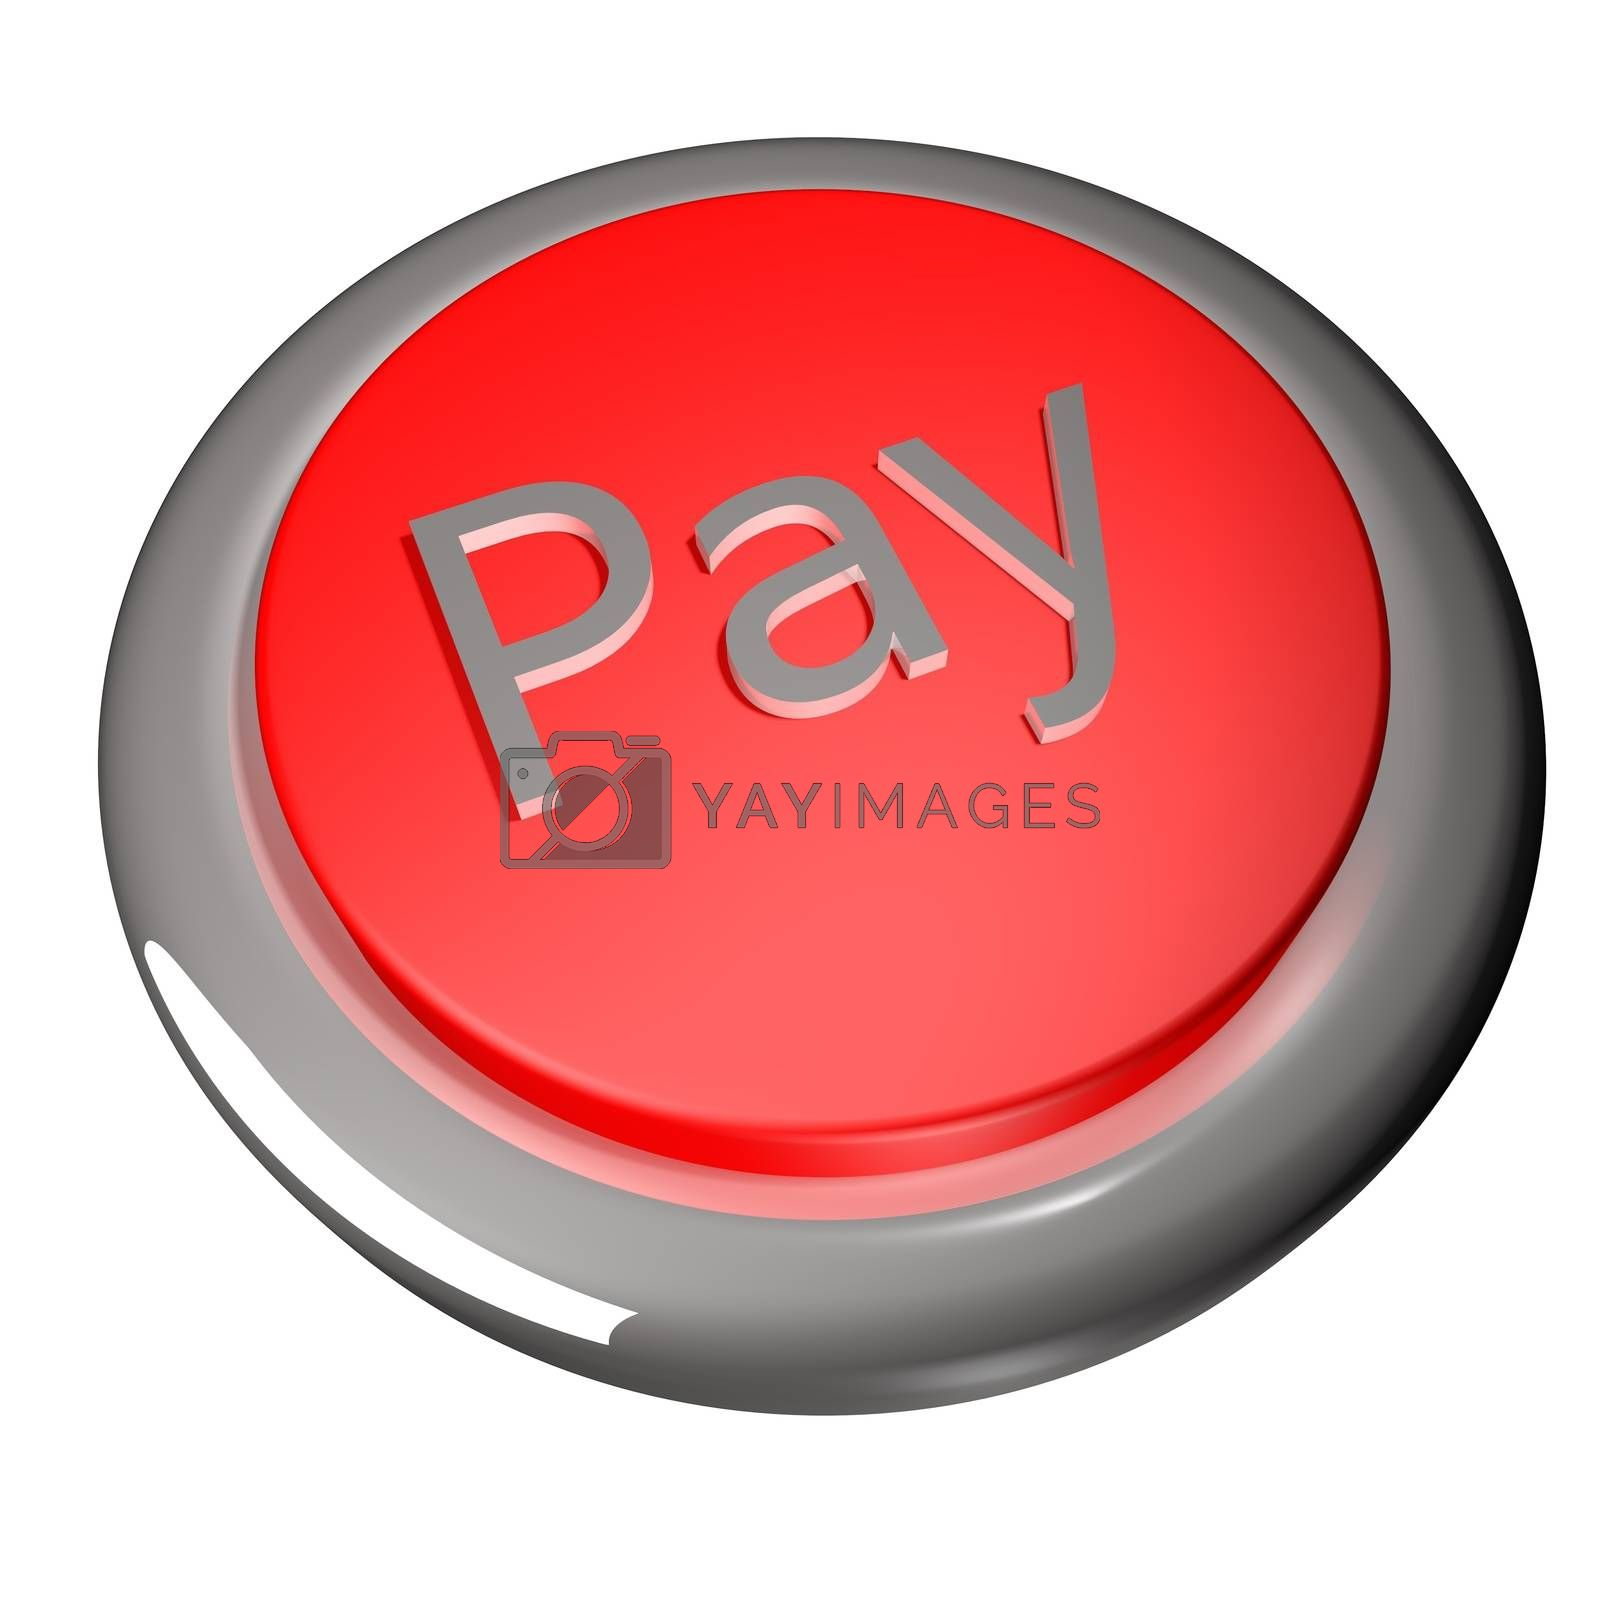 Royalty free image of Pay by Koufax73